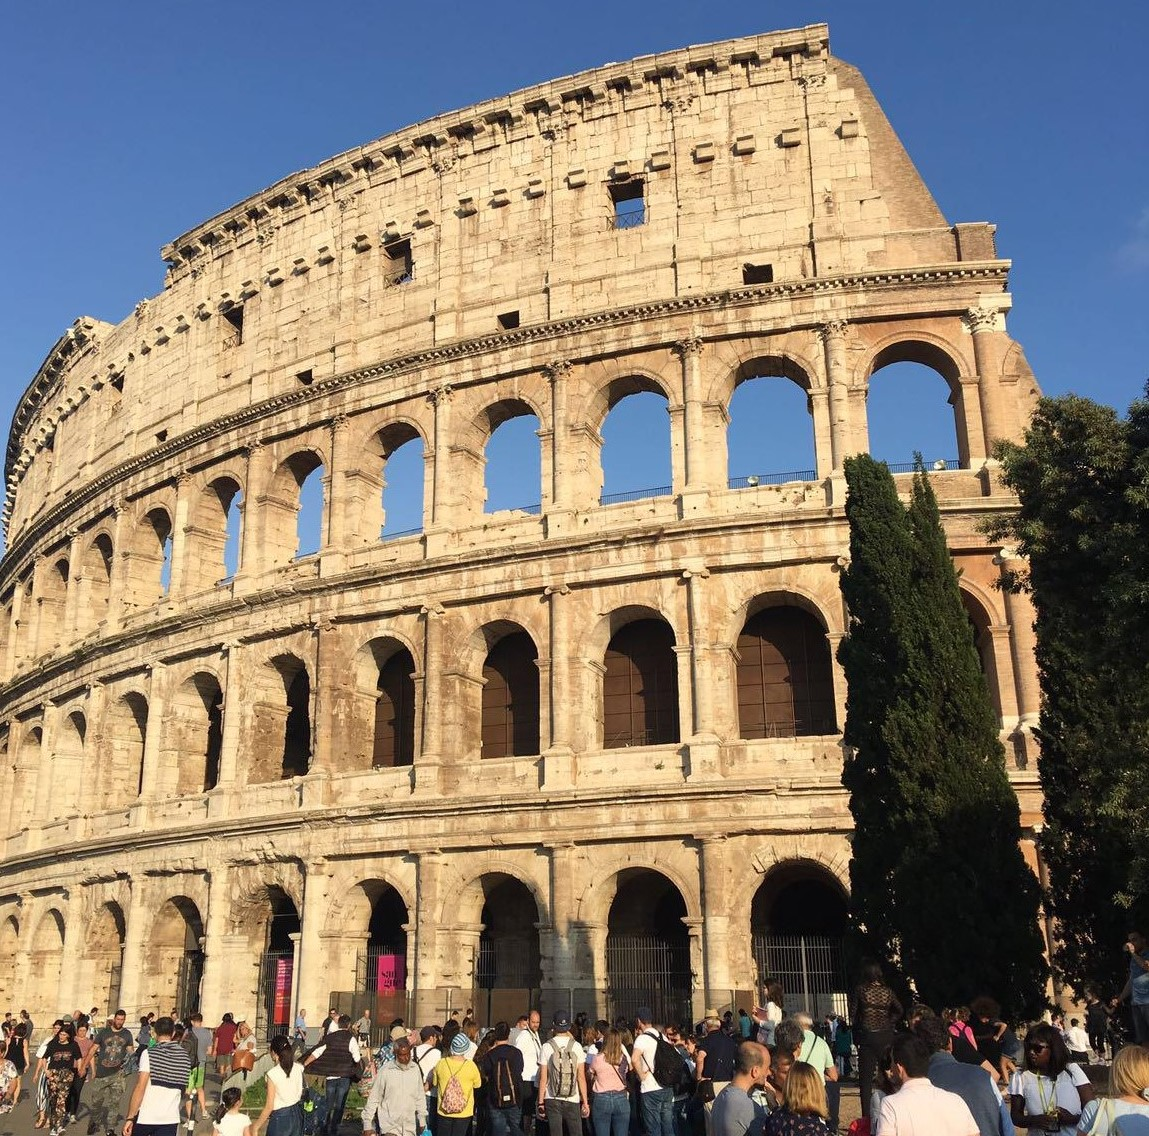 One of the most popular tourist attractions in the world - the mighty Colosseum in Rome, Italy.